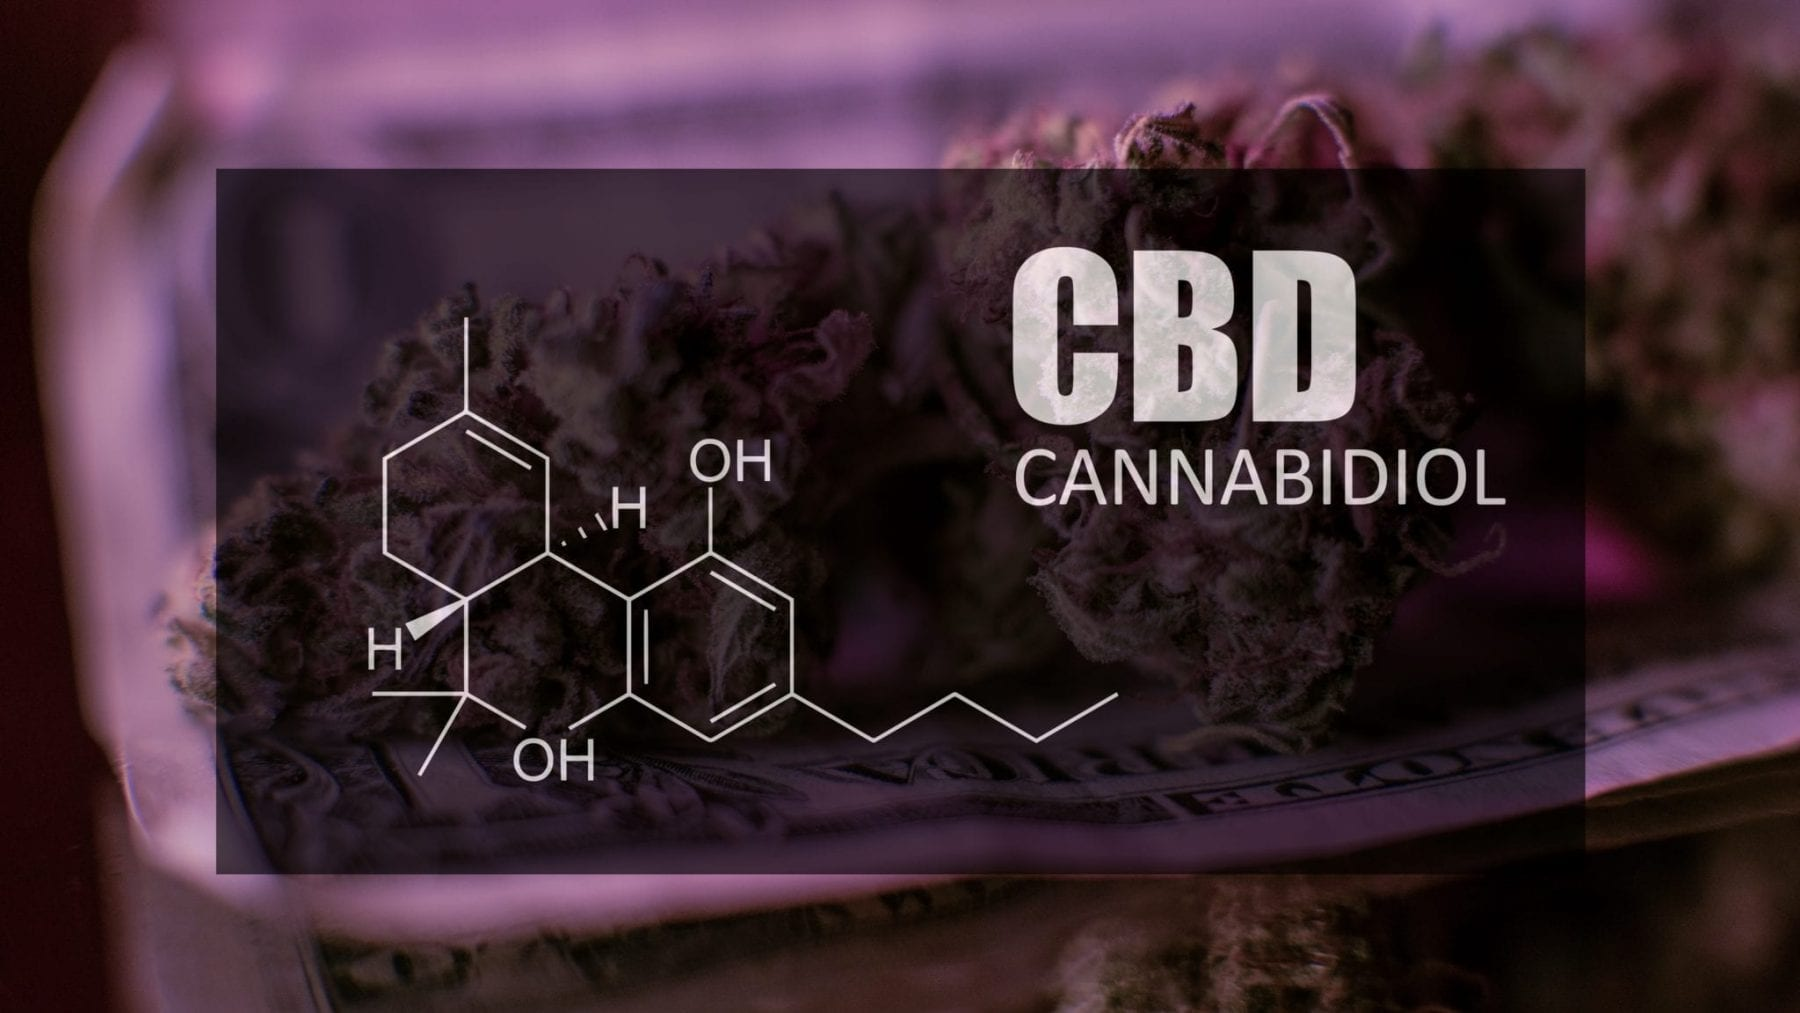 the chemical formula for cbd, the abbreviation for cannabidiol